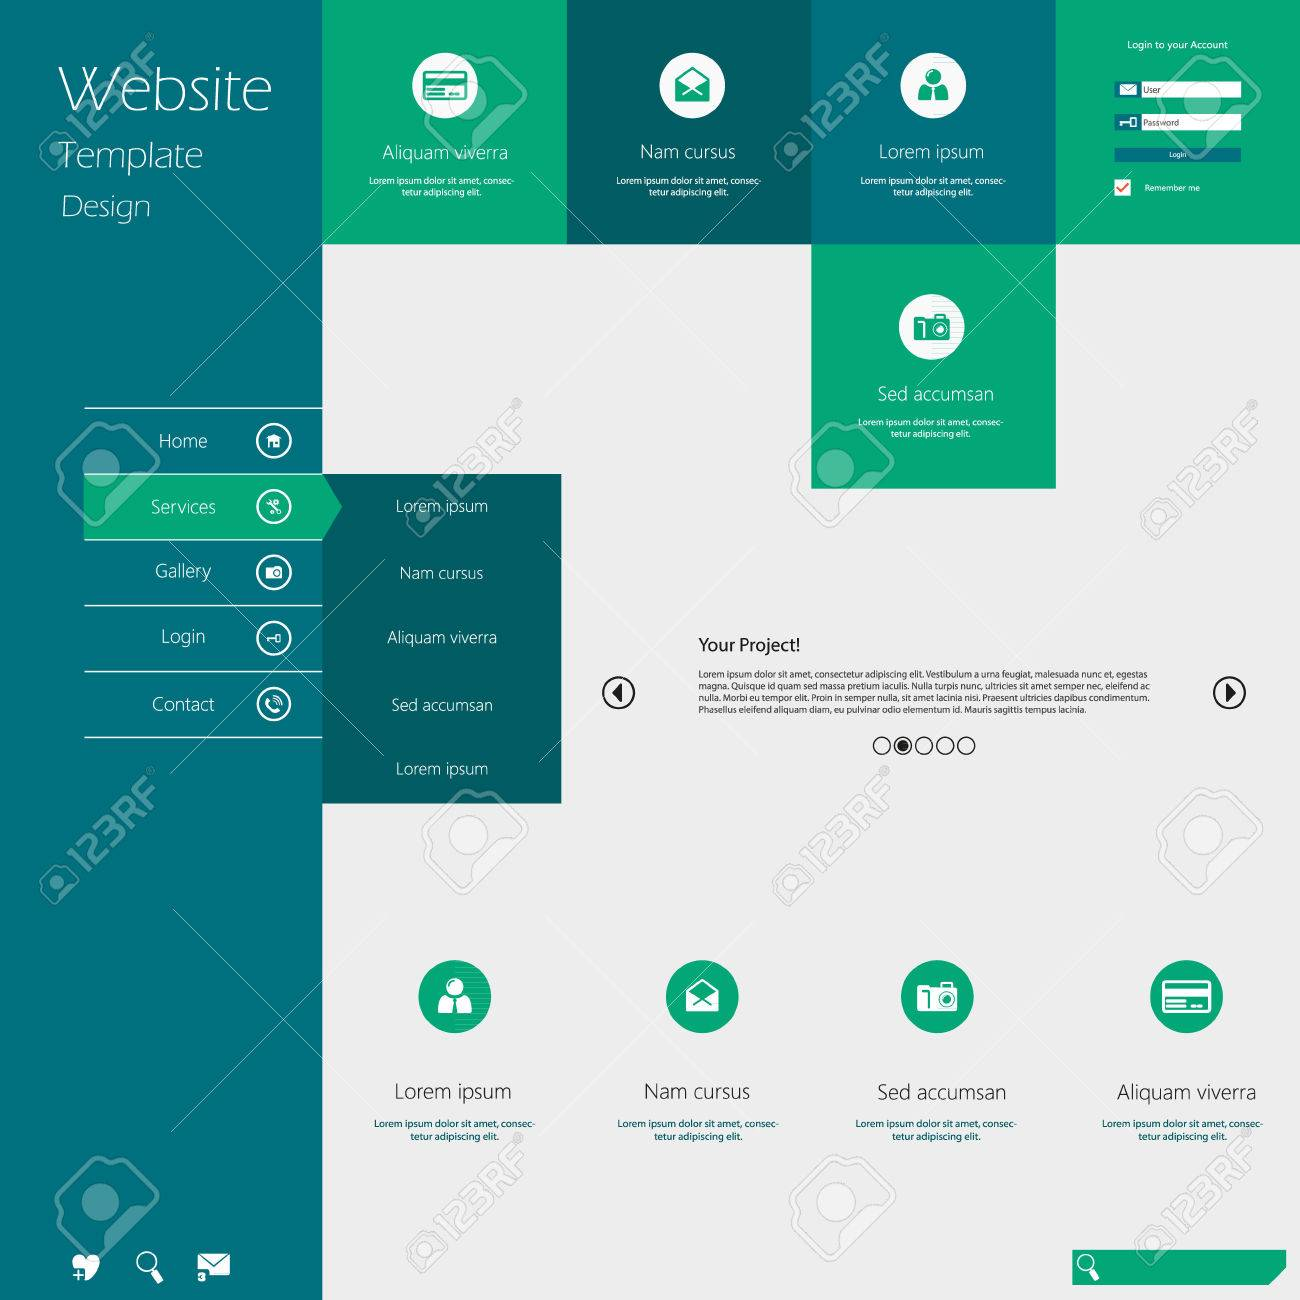 Flat Design Of The Menu For A Website Creative Web Design Royalty Free Cliparts Vectors And Stock Illustration Image 35593926